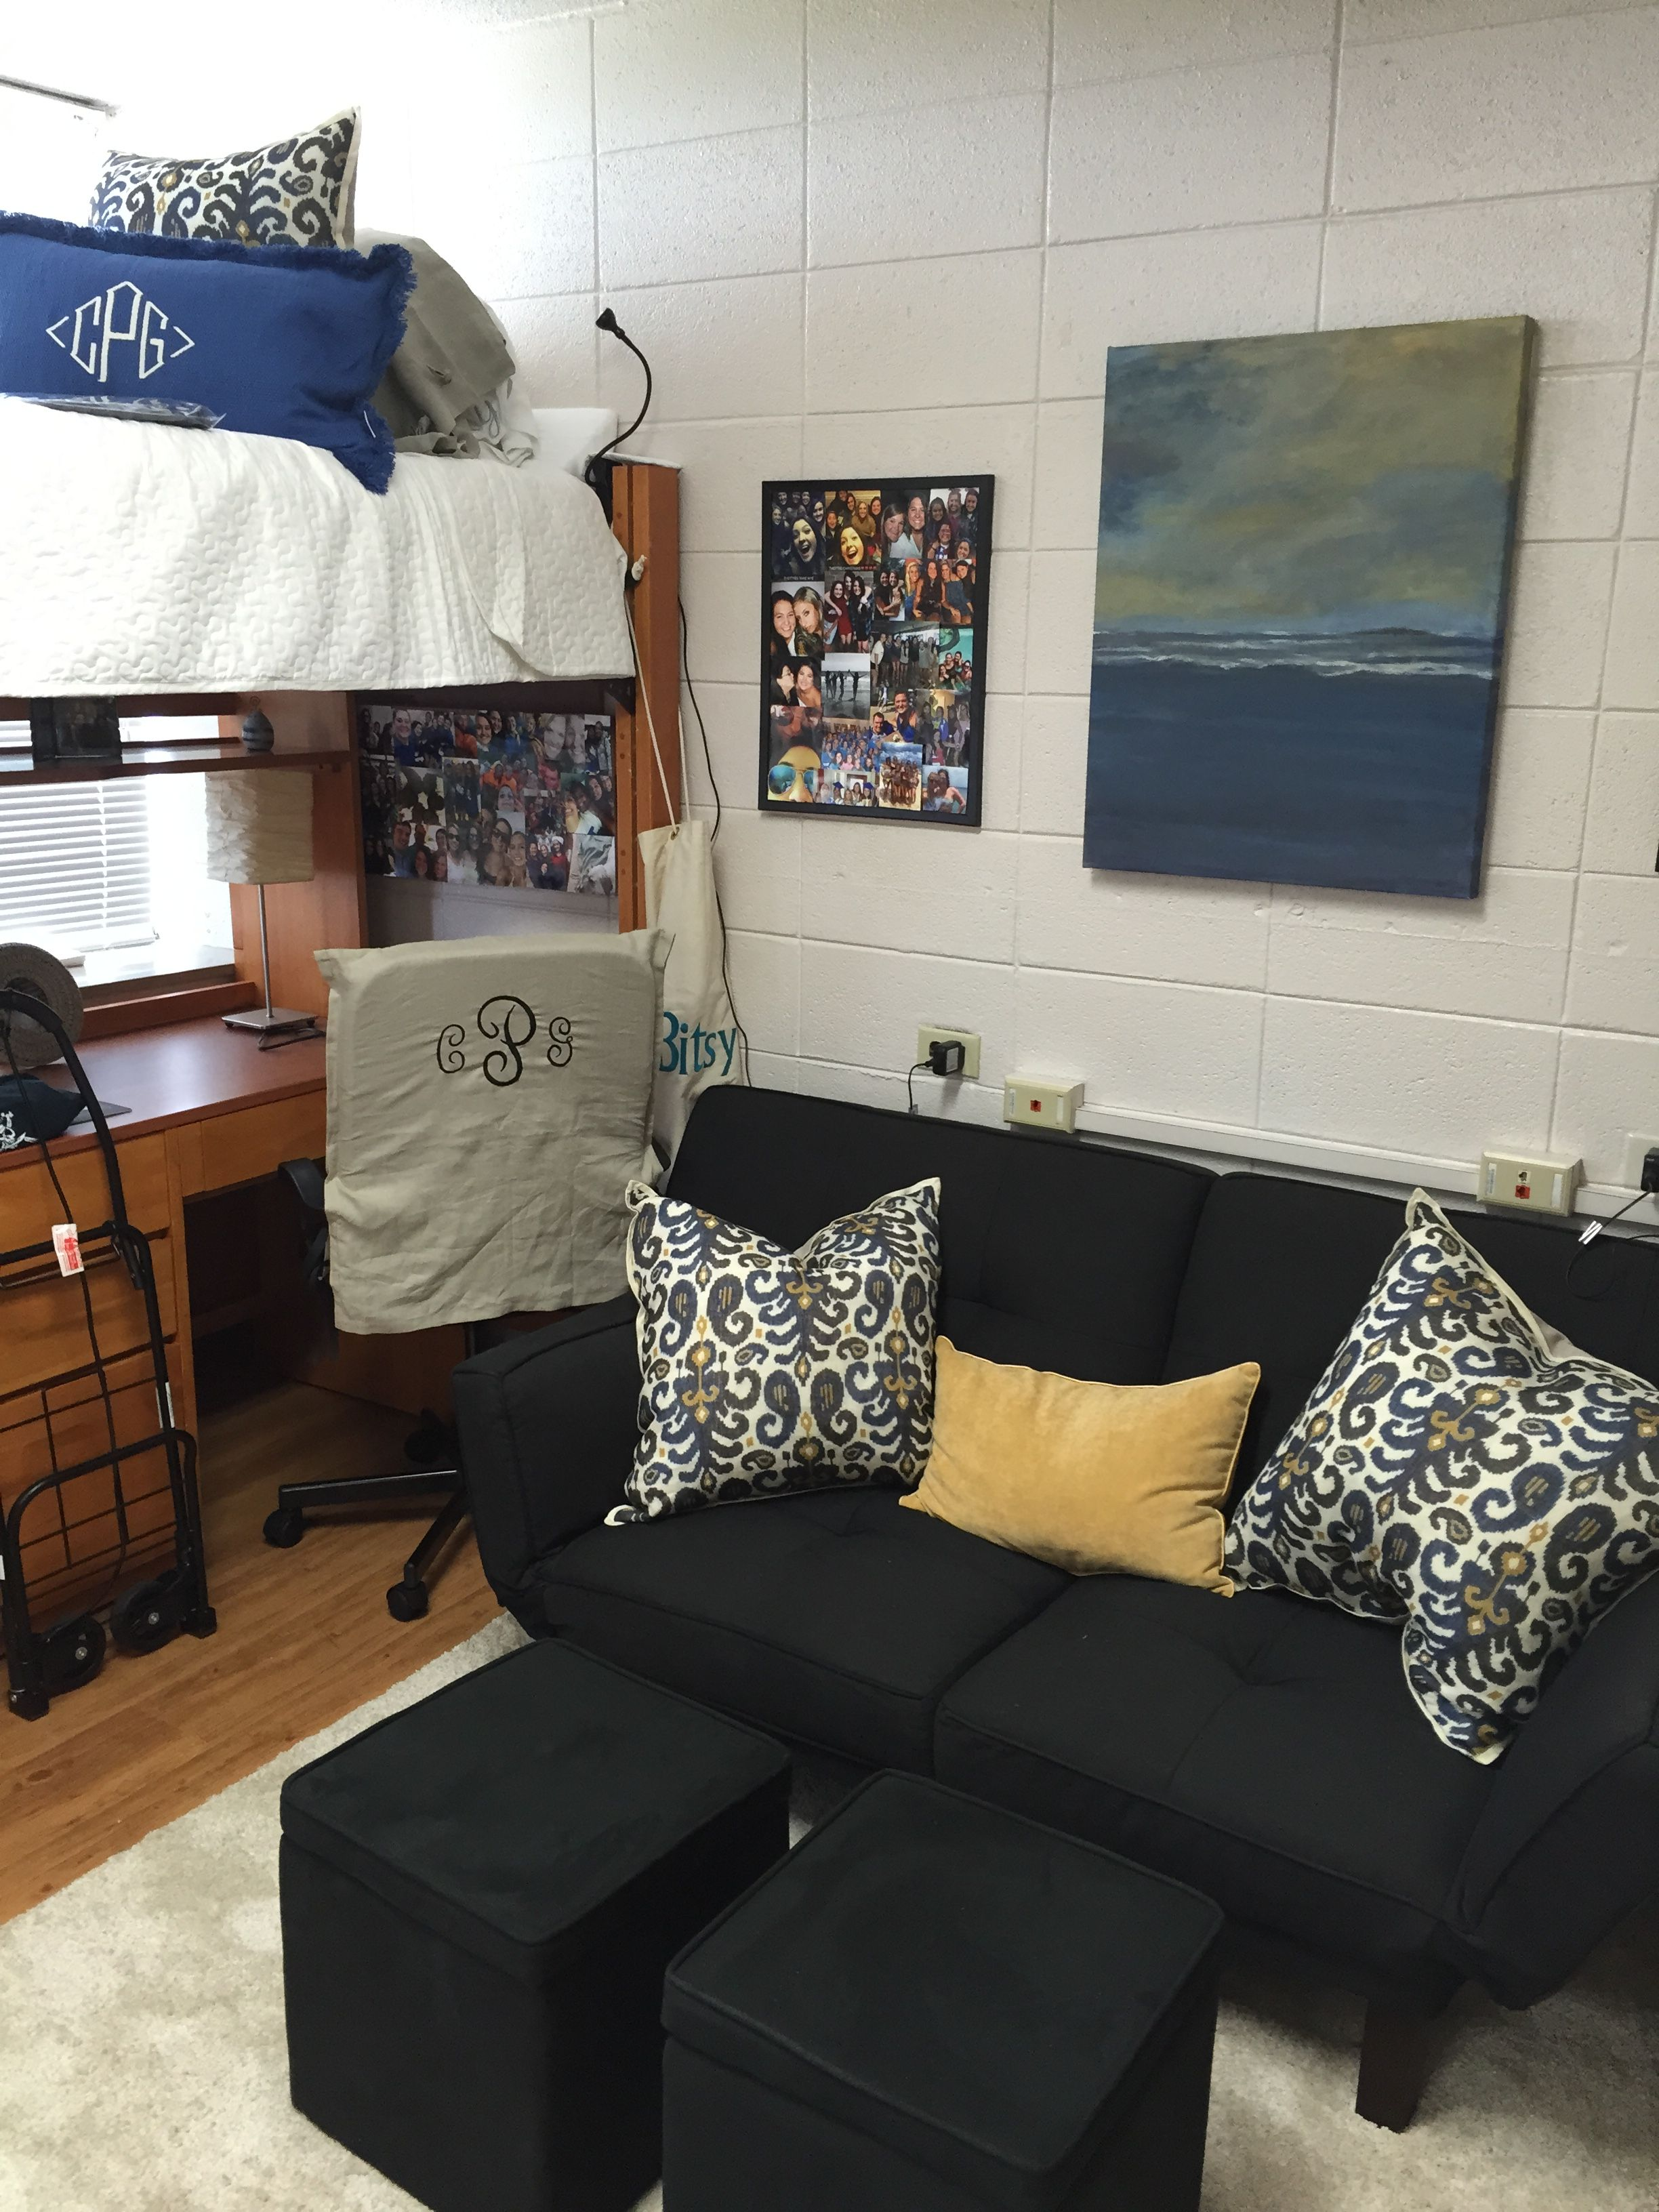 Dorm Room Styles: University Of Arkansas, Reid Hall Dorm Room